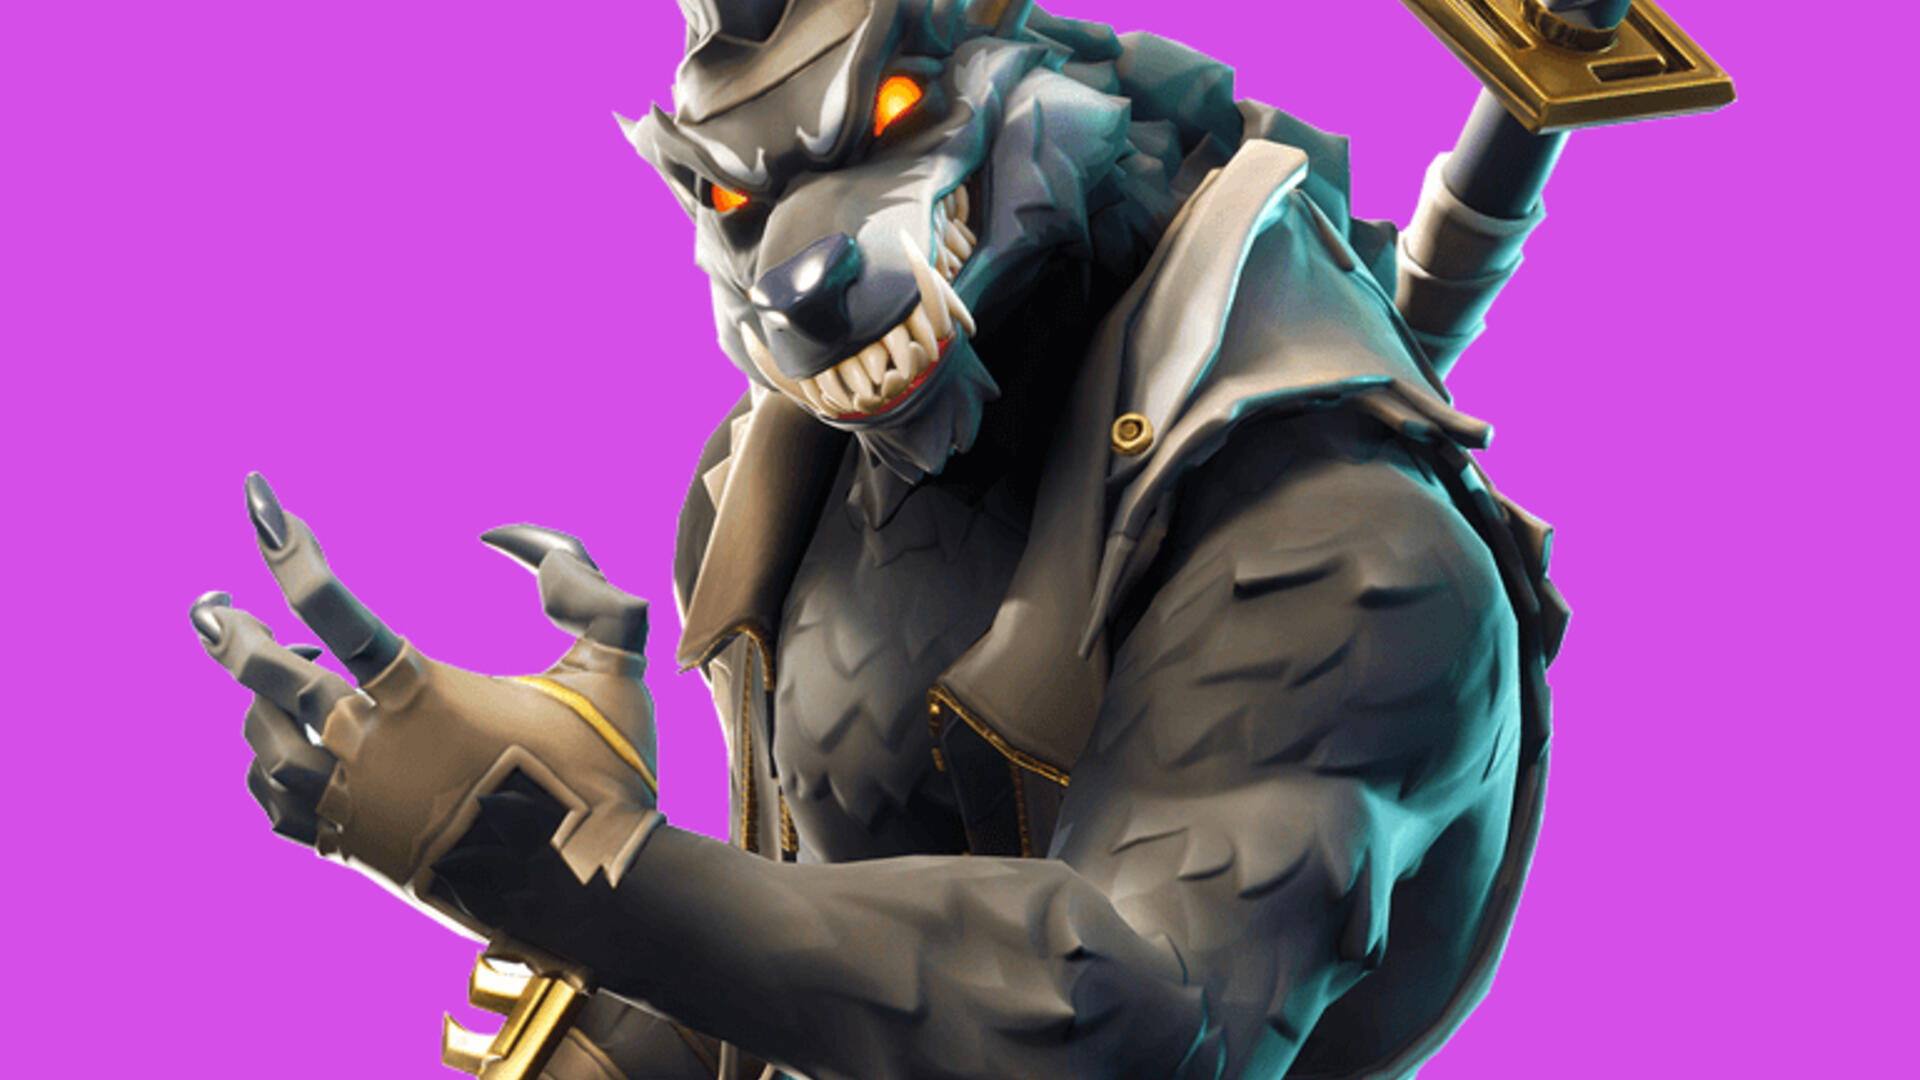 Fortnite Week 10 Challenges - How to Complete All Season 8, Week 10 Battle Pass Challenges